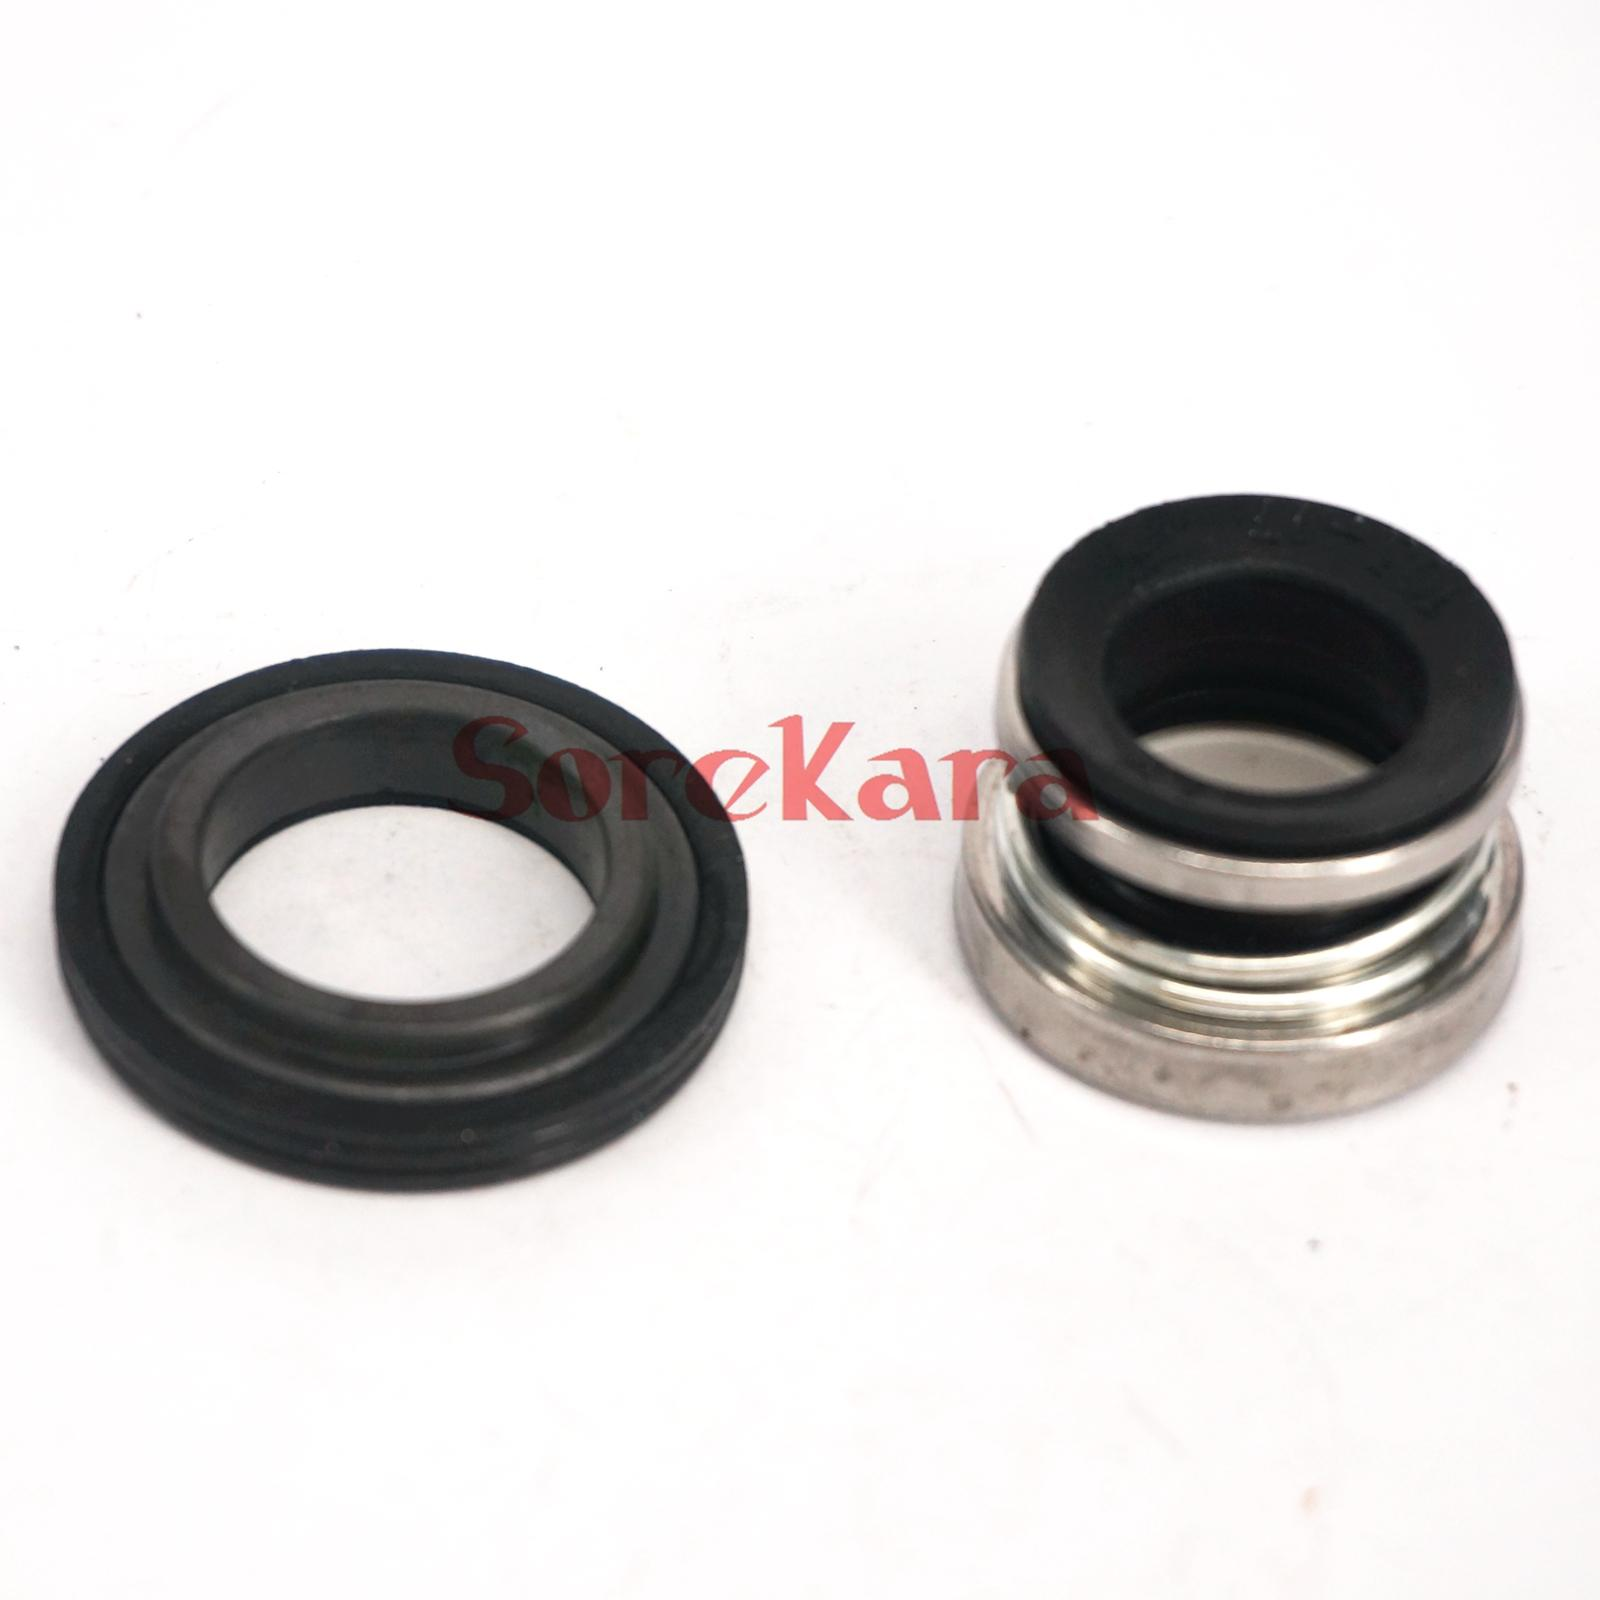 10-17mm Water Pump Mechanical Shaft Seal Single Coil Spring For Self-priming Pump  Clean Water Pump 0.5MPa